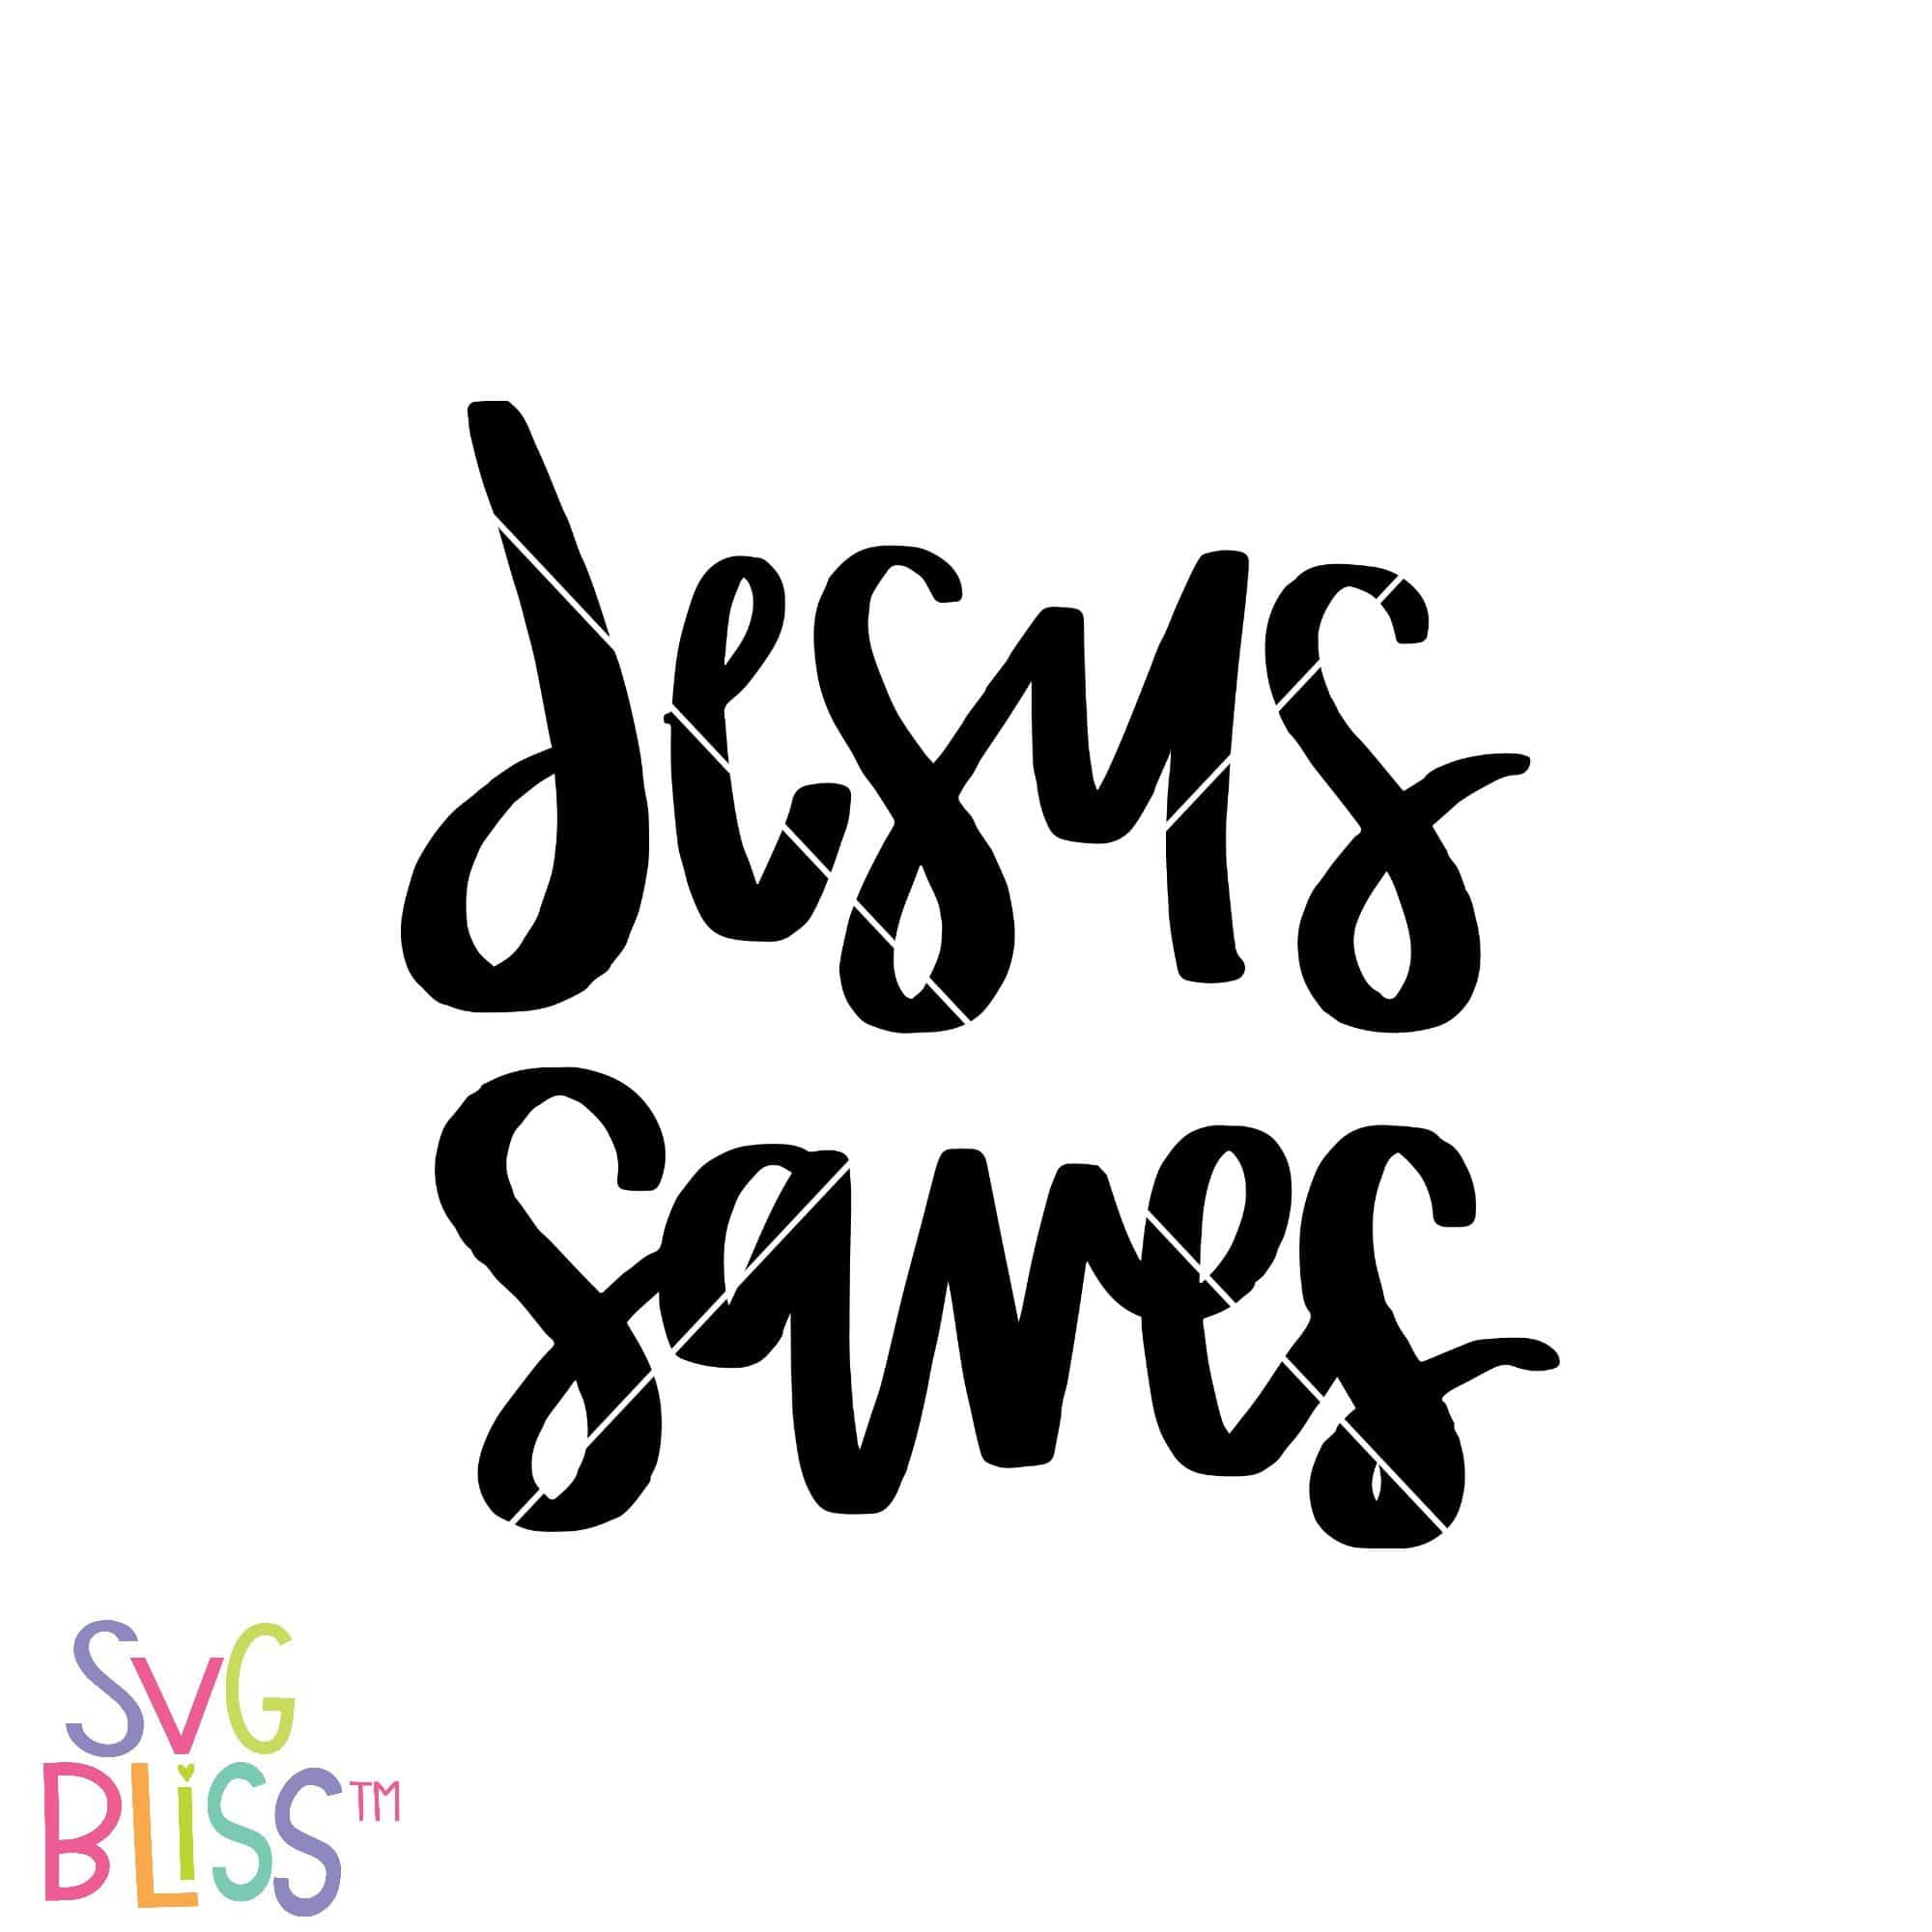 Purchase Jesus Saves $2.99 ©SVG Bliss™